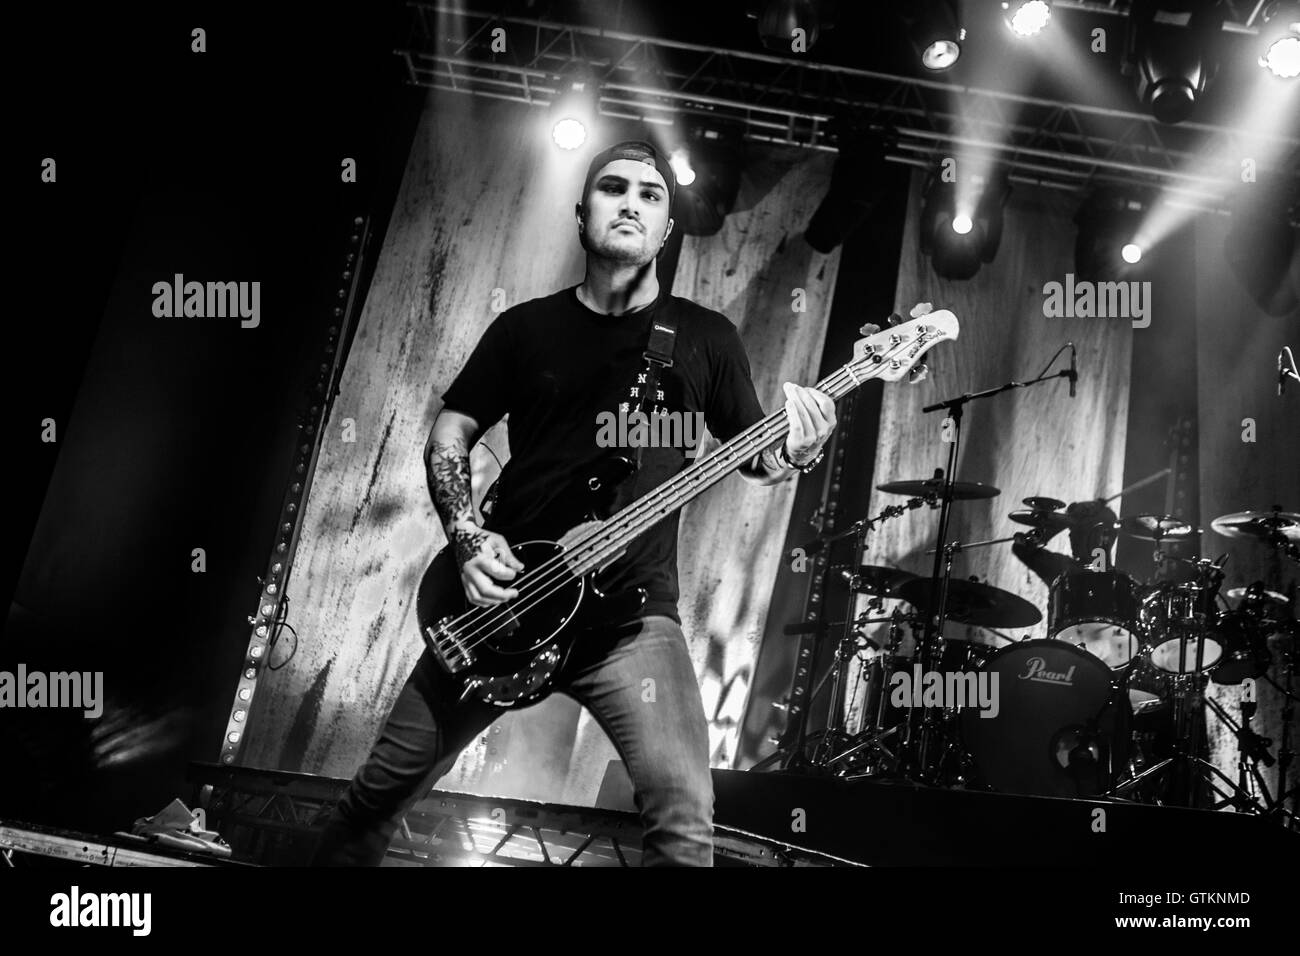 Metalcore band Parkway Drive performs live in Milano, Italy - Stock Image